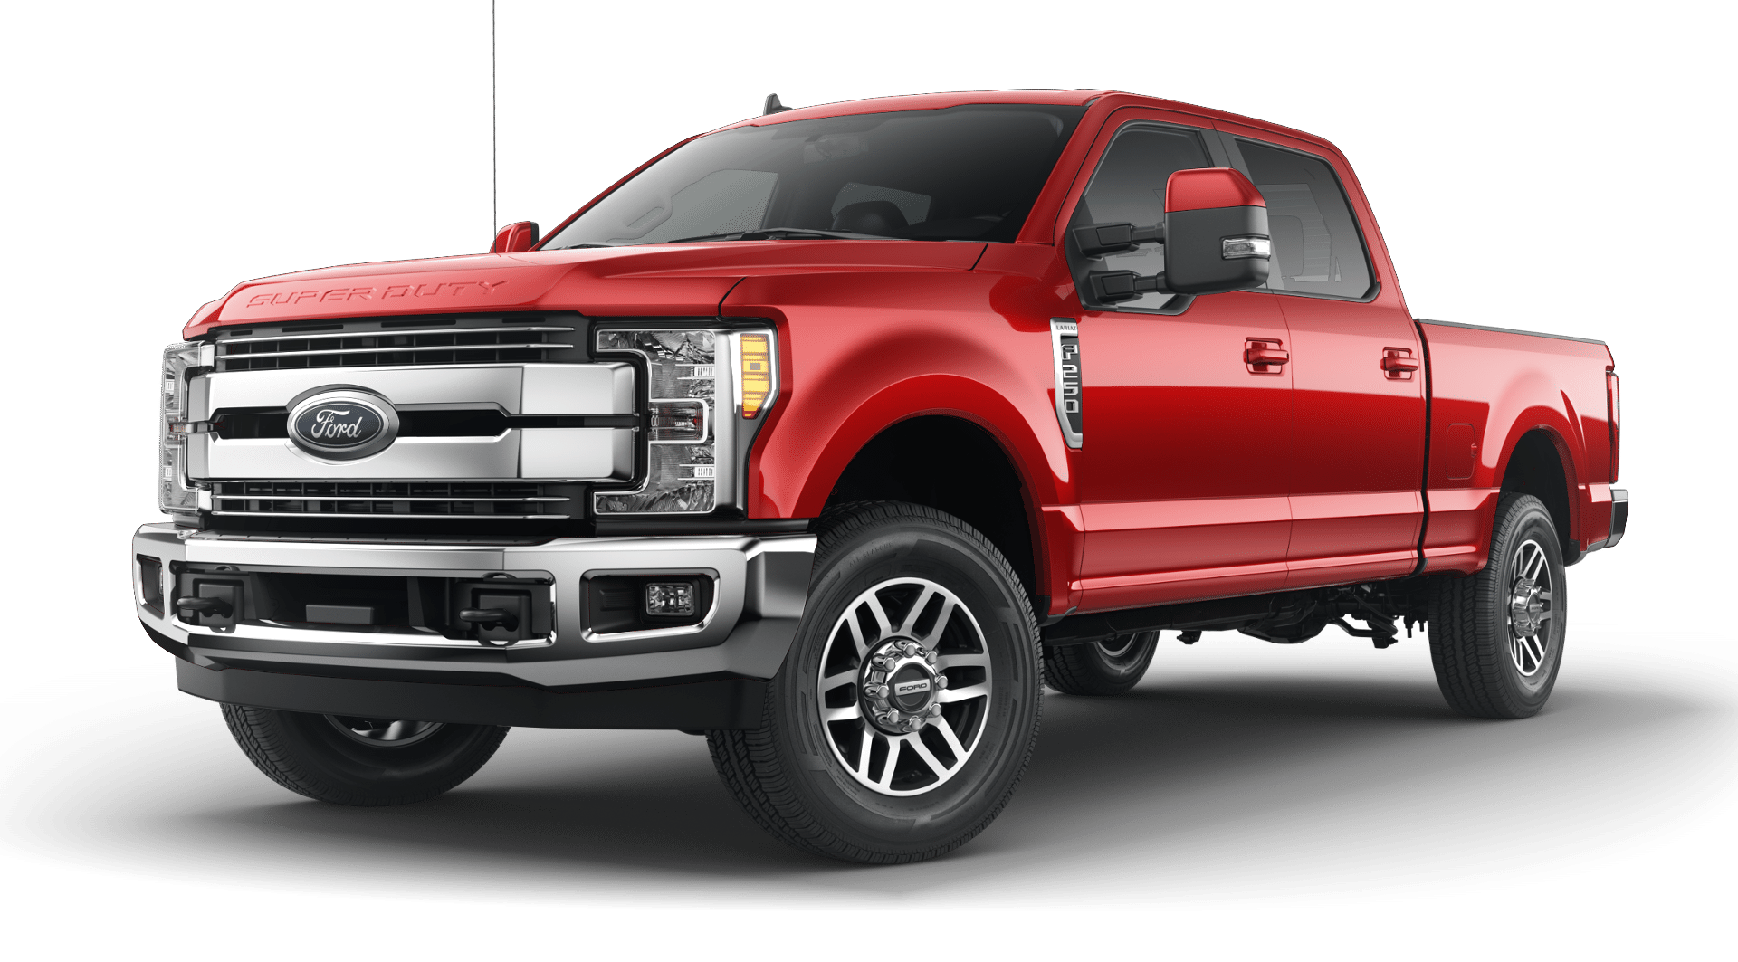 Ford F-250 2019 Lariat 6.7 V8 OHV Power Stroke® Turbo Diesel Дизель 6-ст. АКПП Torqshift® Heavy-Duty Selectshift™ Дизель Задний